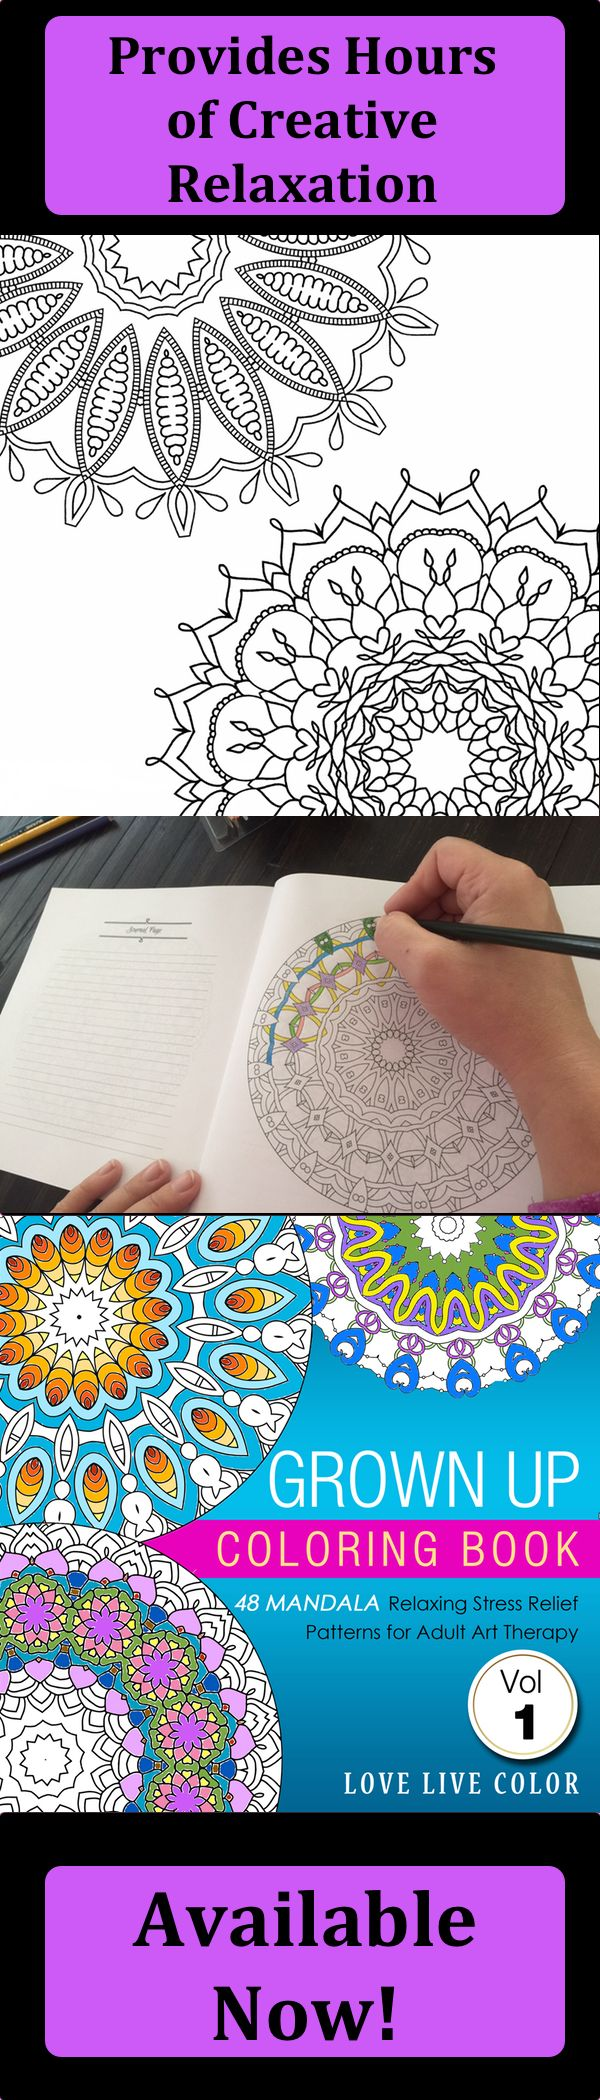 Colouring for adults benefits - Love Live Color Is Inspiring People To Take A Break From Their Digital Screens And Live